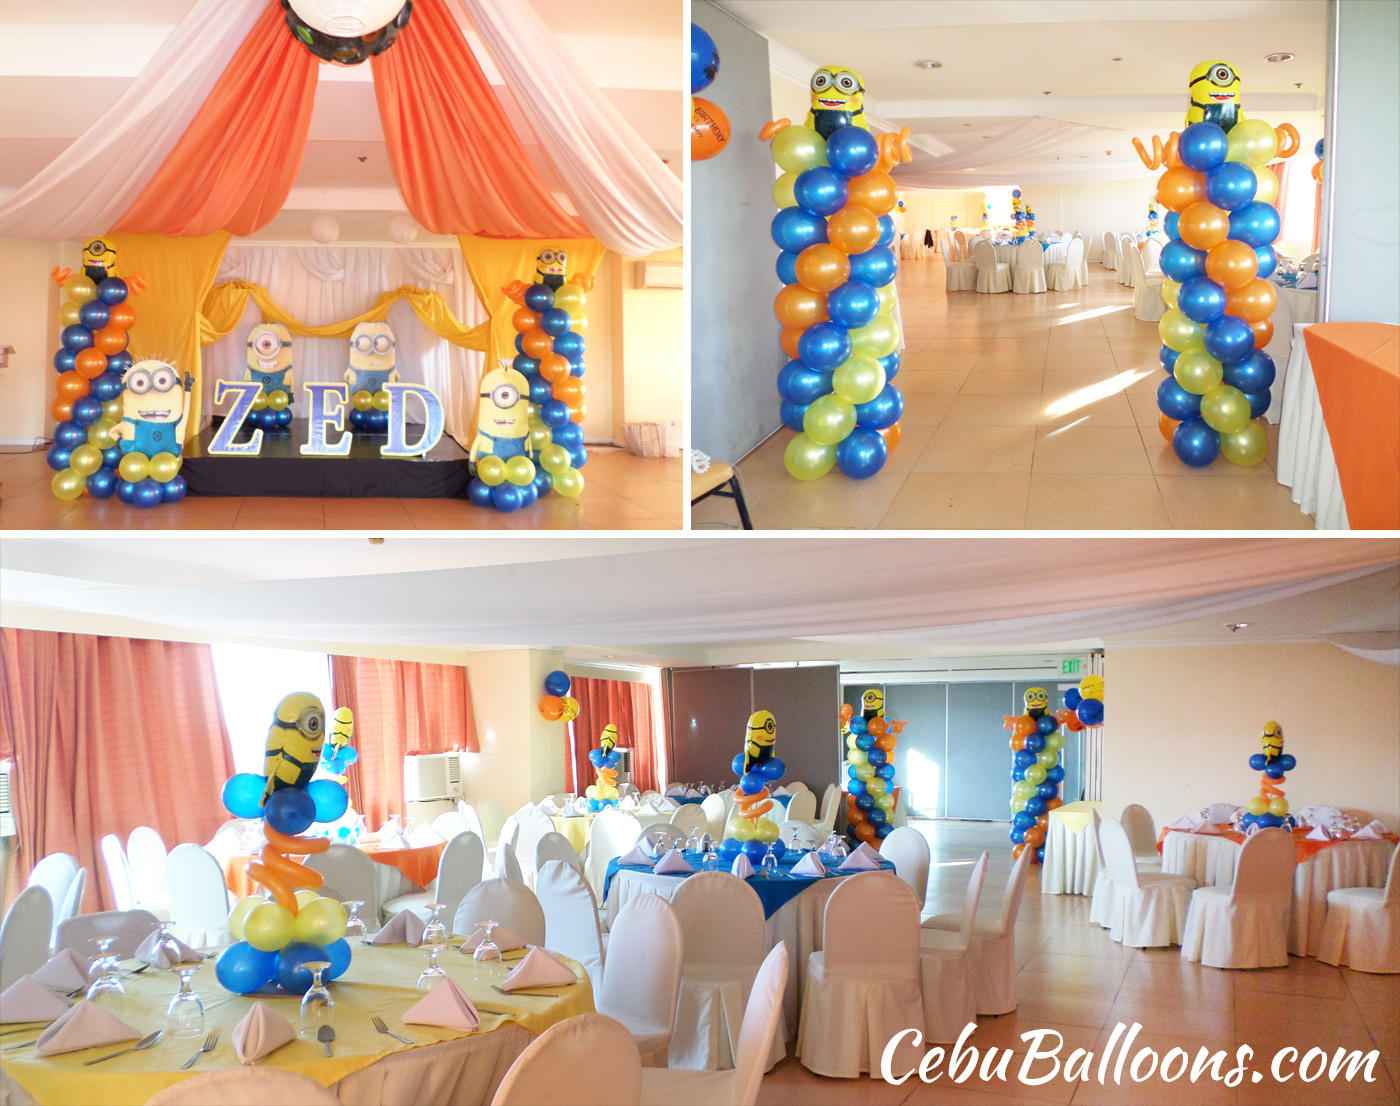 Golden Peak Hotel Cebu Balloons and Party Supplies